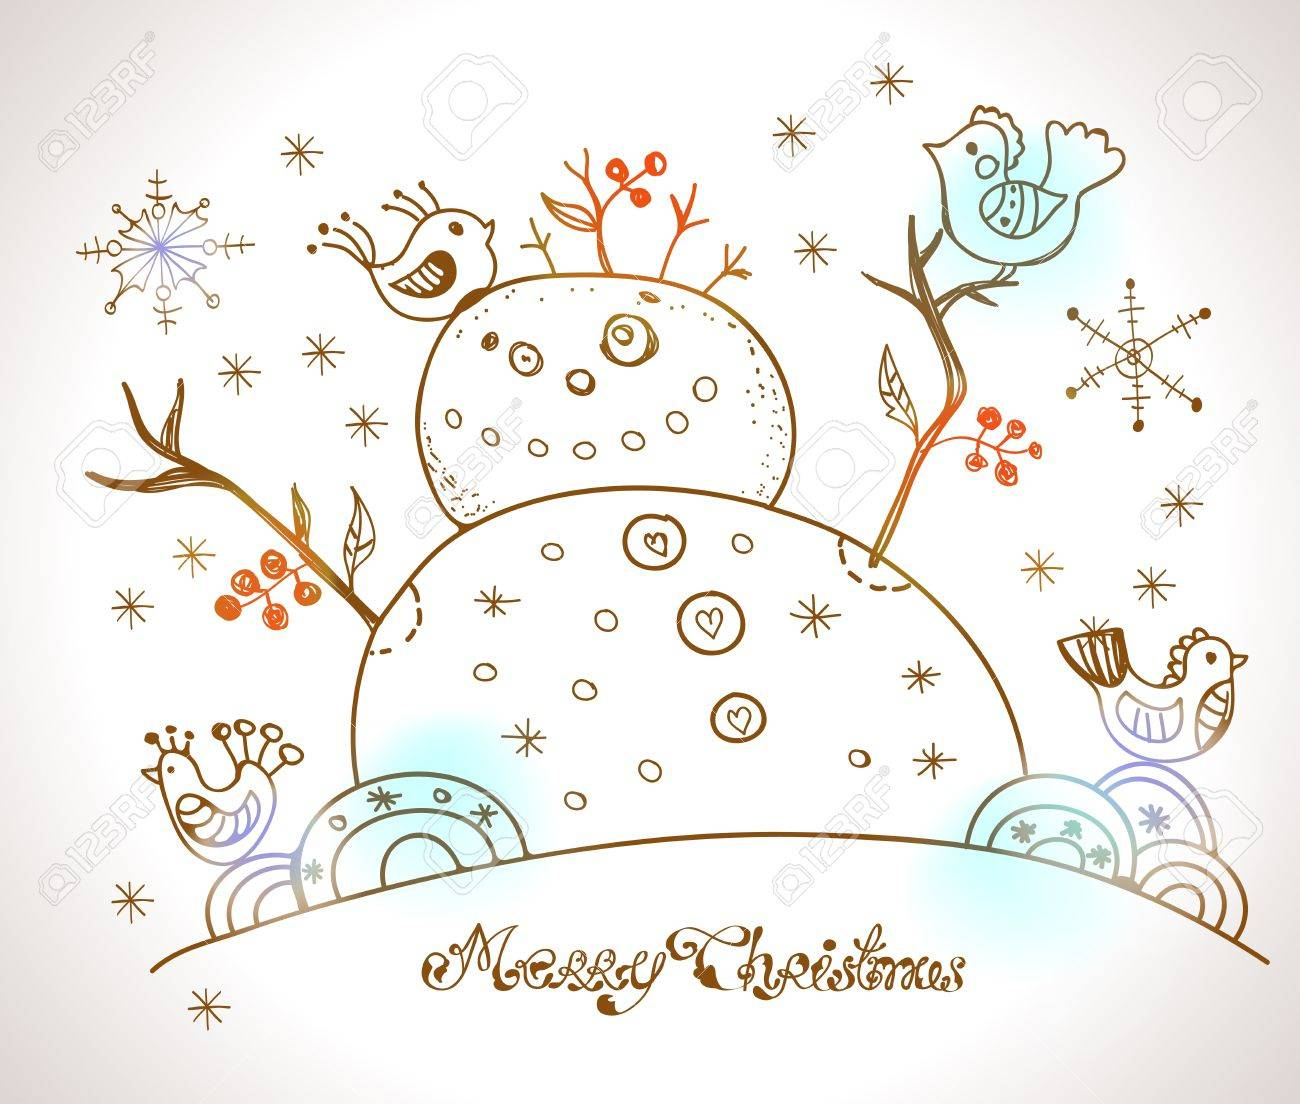 Christmas Card for xmas design with hand drawn snowman and birds Stock Vector - 20361536